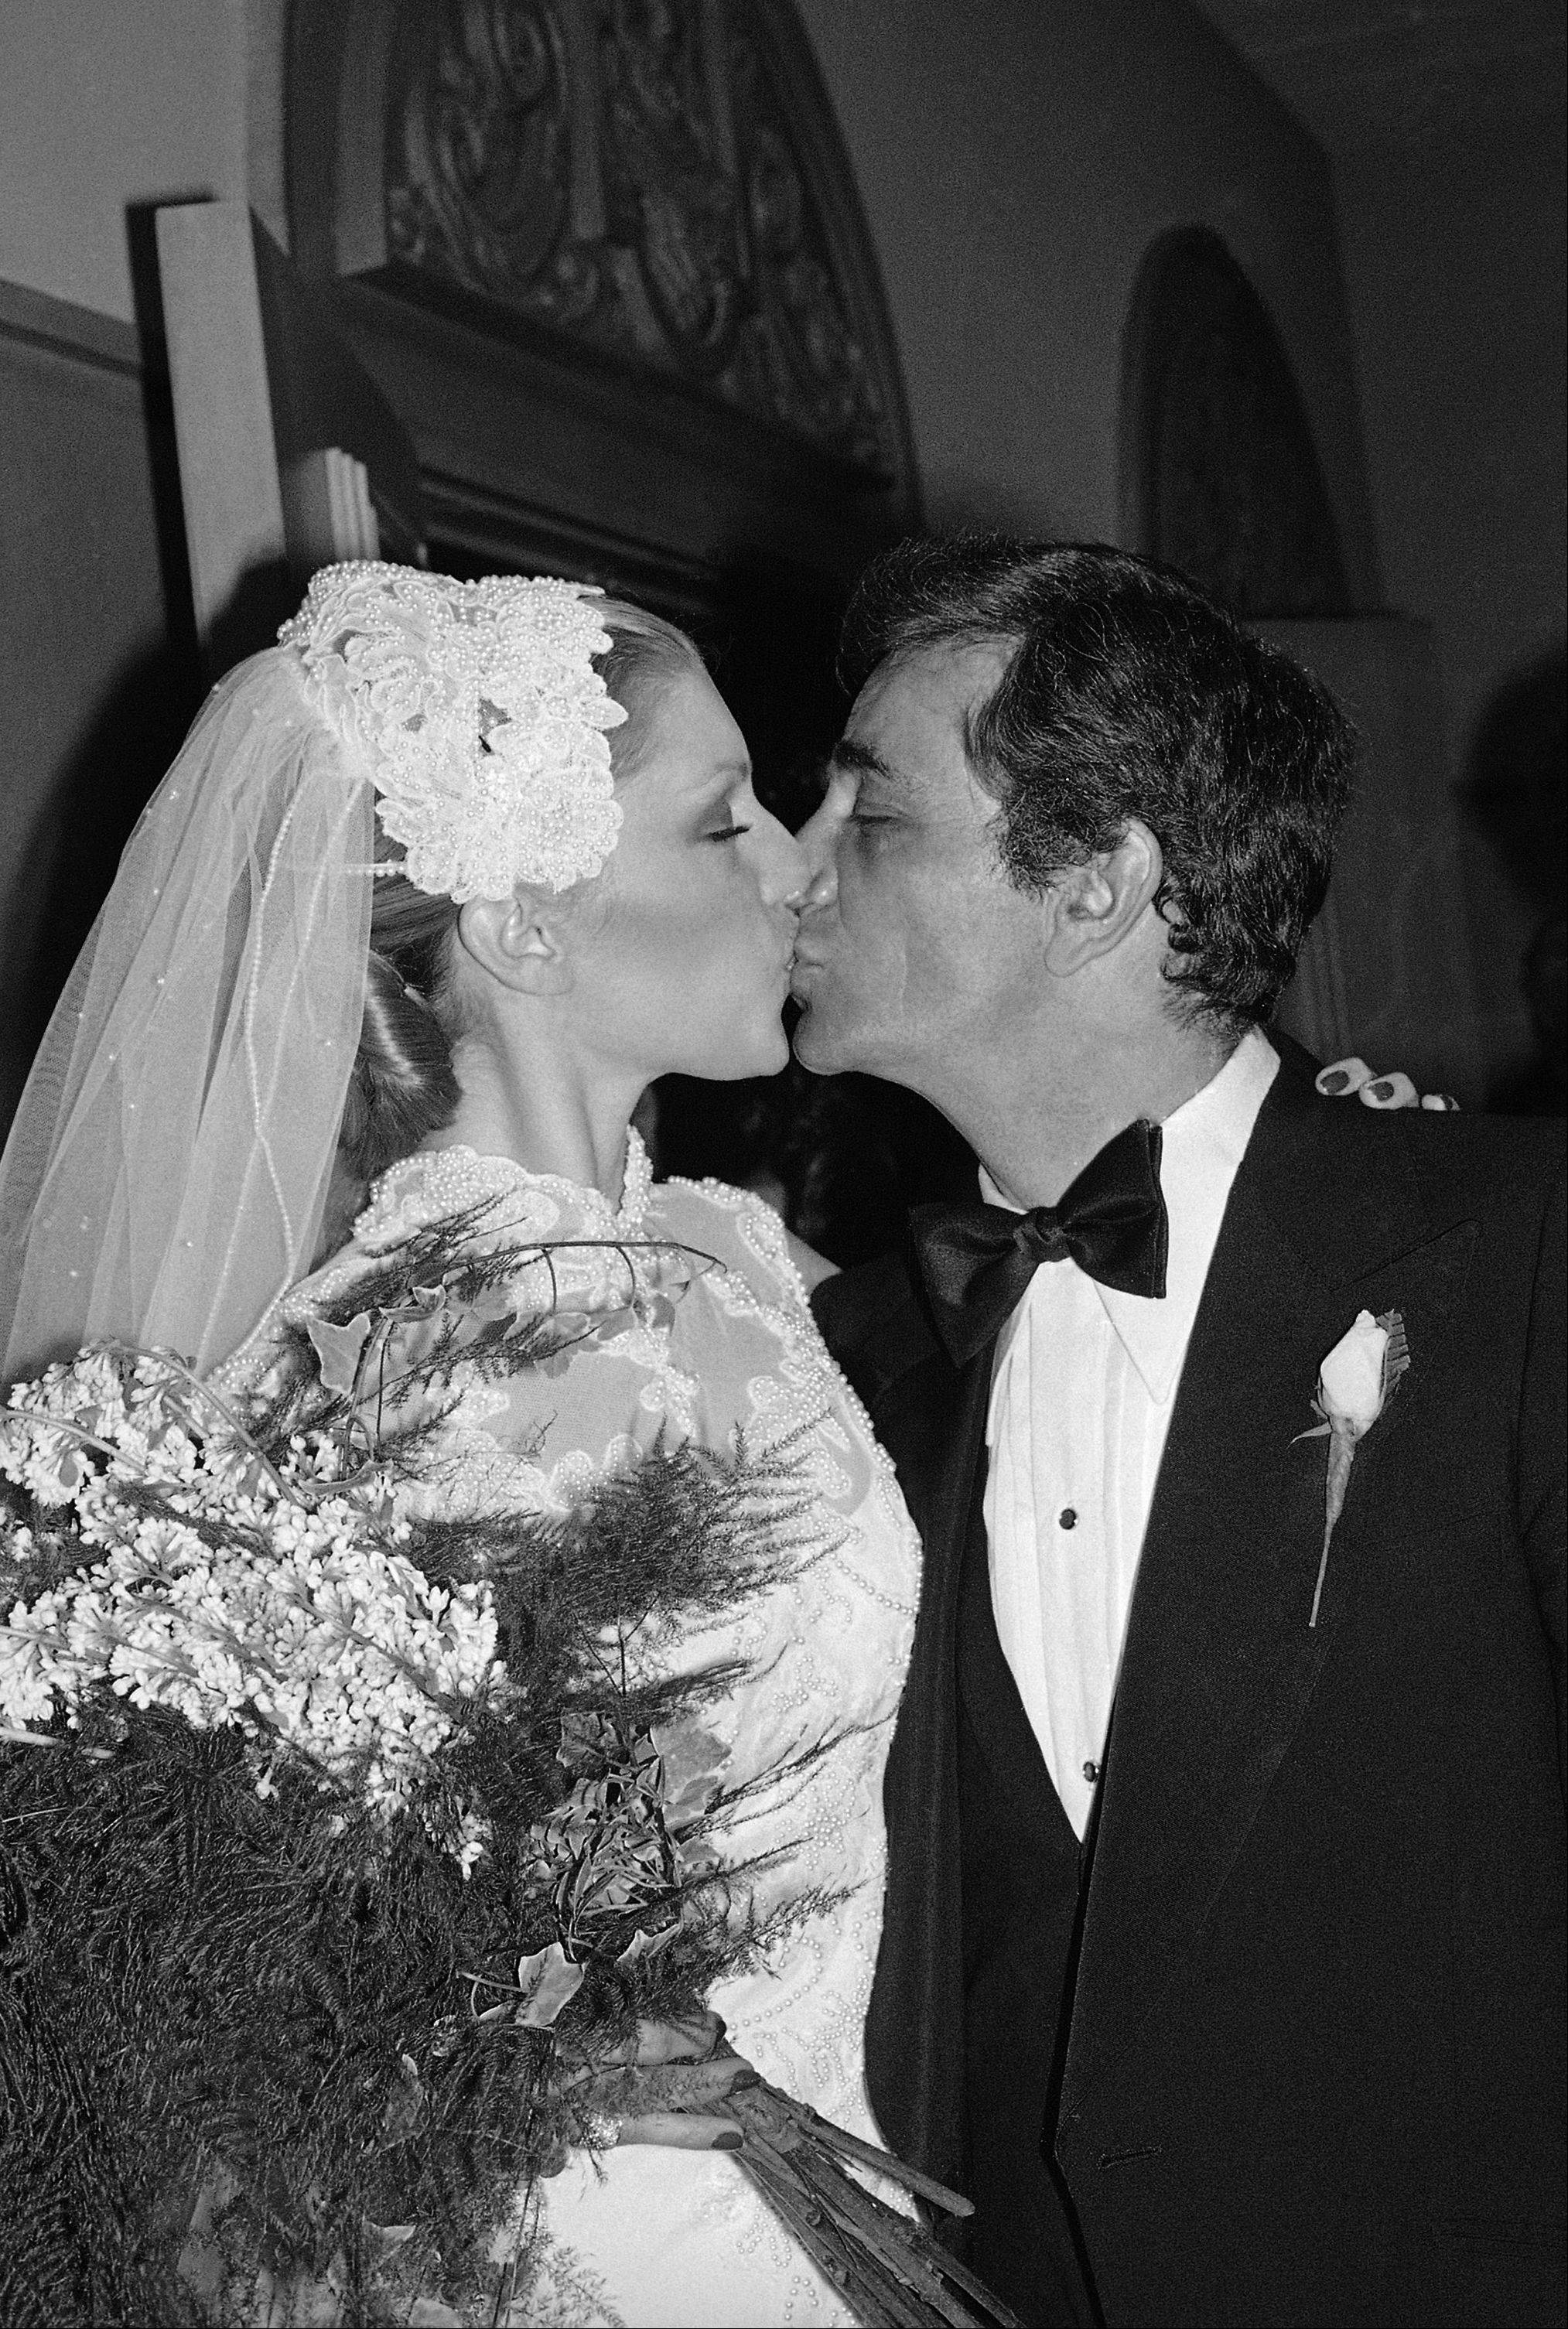 Actor Peter Falk kisses actress Shera Danese as they emerge from the Church of the Good Shephard shortly after their wedding ceremony in Los Angeles on Friday, Dec. 1, 1977. A black tie dinner and dance followed with celebrities such as John Cassavetes, Ben Gazzara, and Bob Dishy attending.